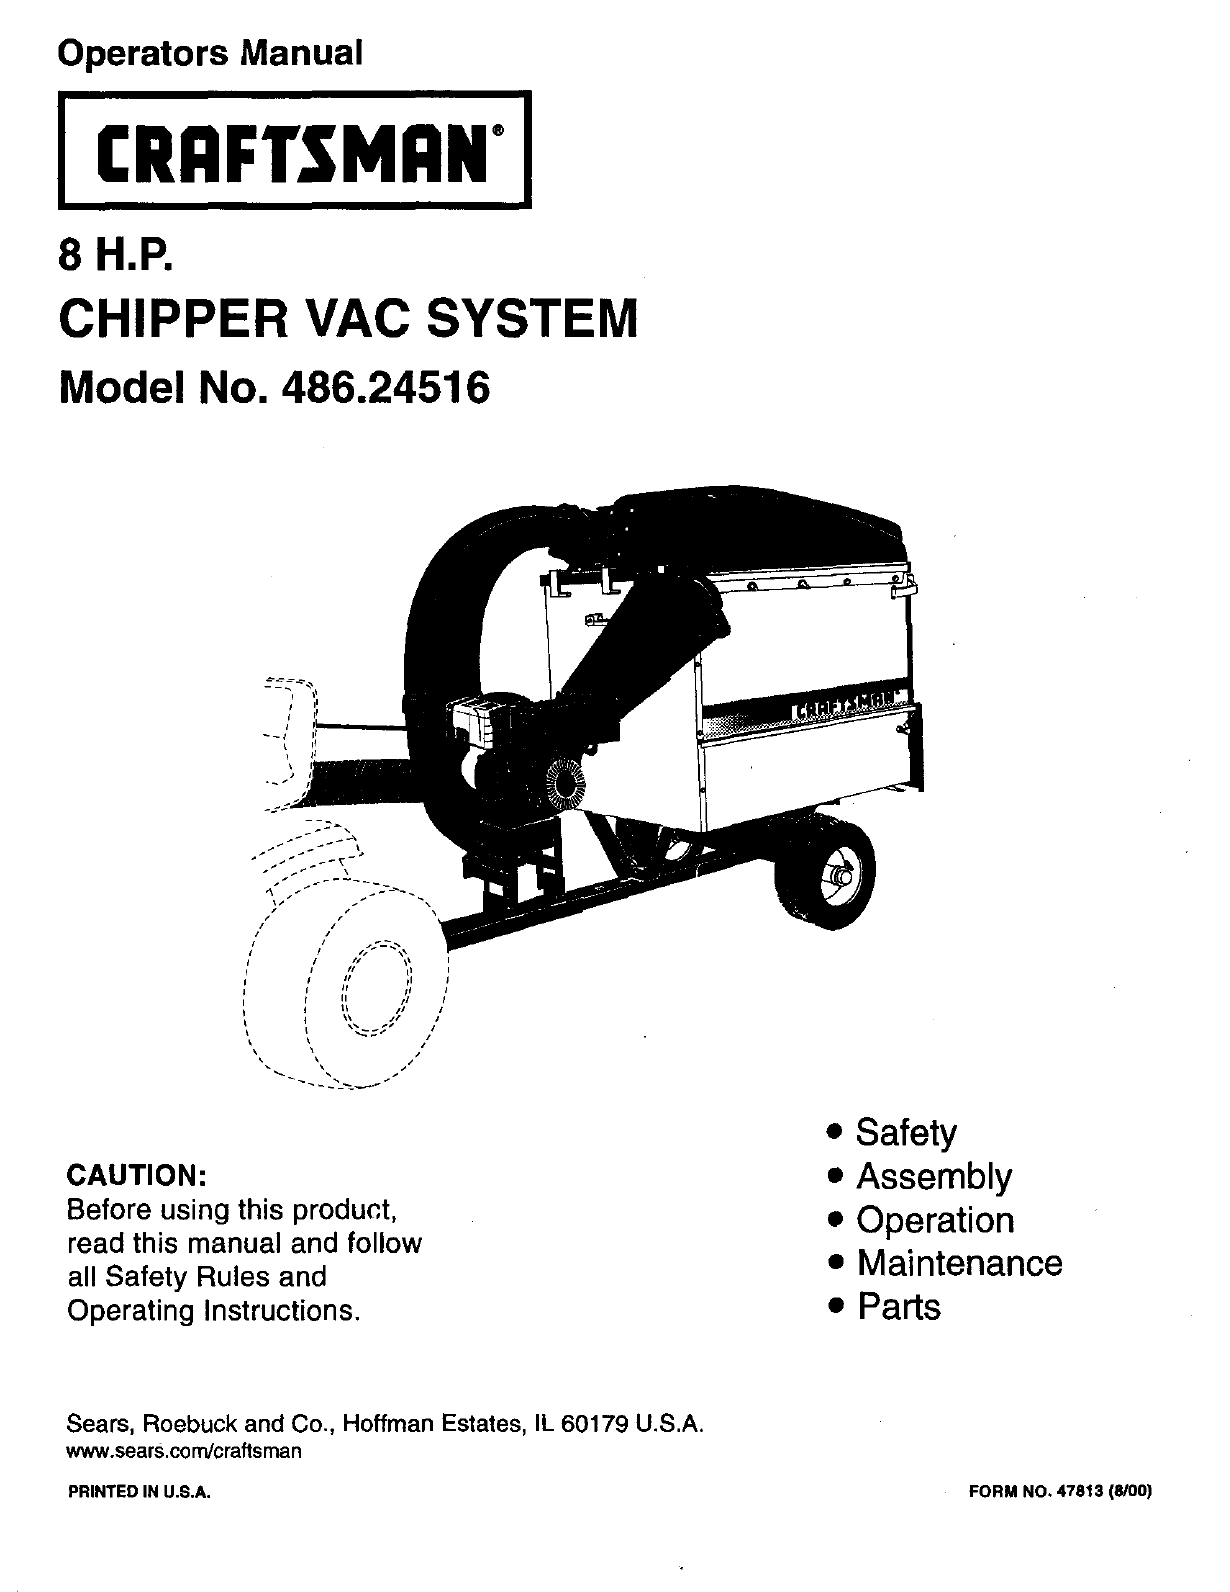 Sears Craftsman Lawn Vacuum And Chipper : Craftsman chipper  user guide manualsonline